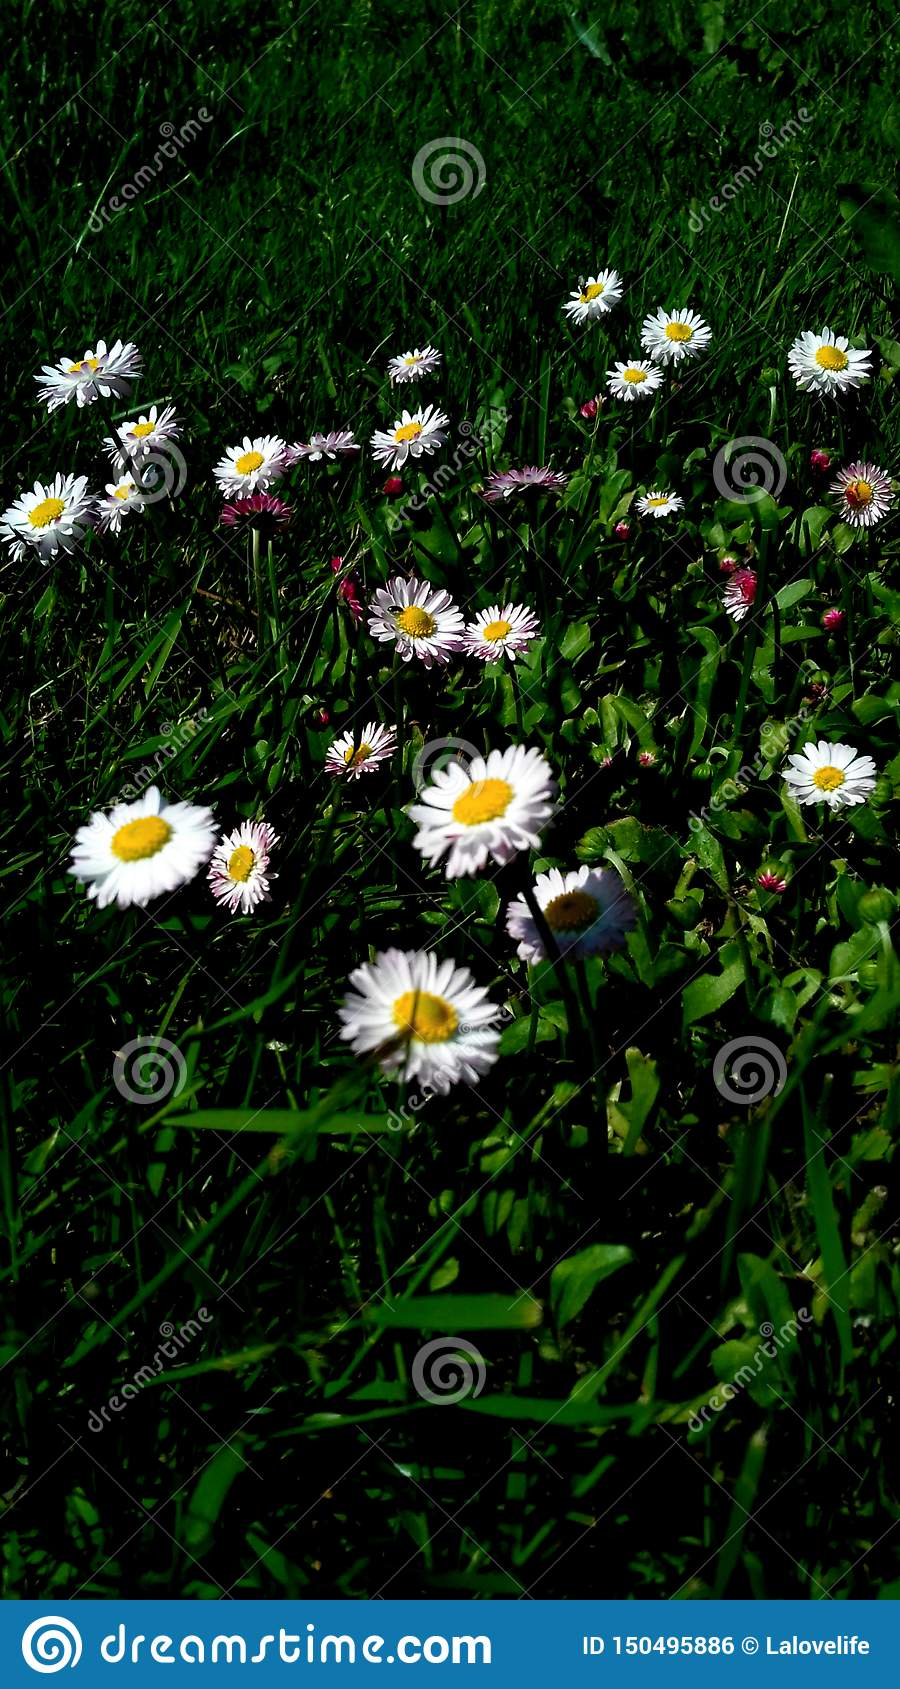 Daisies with green background